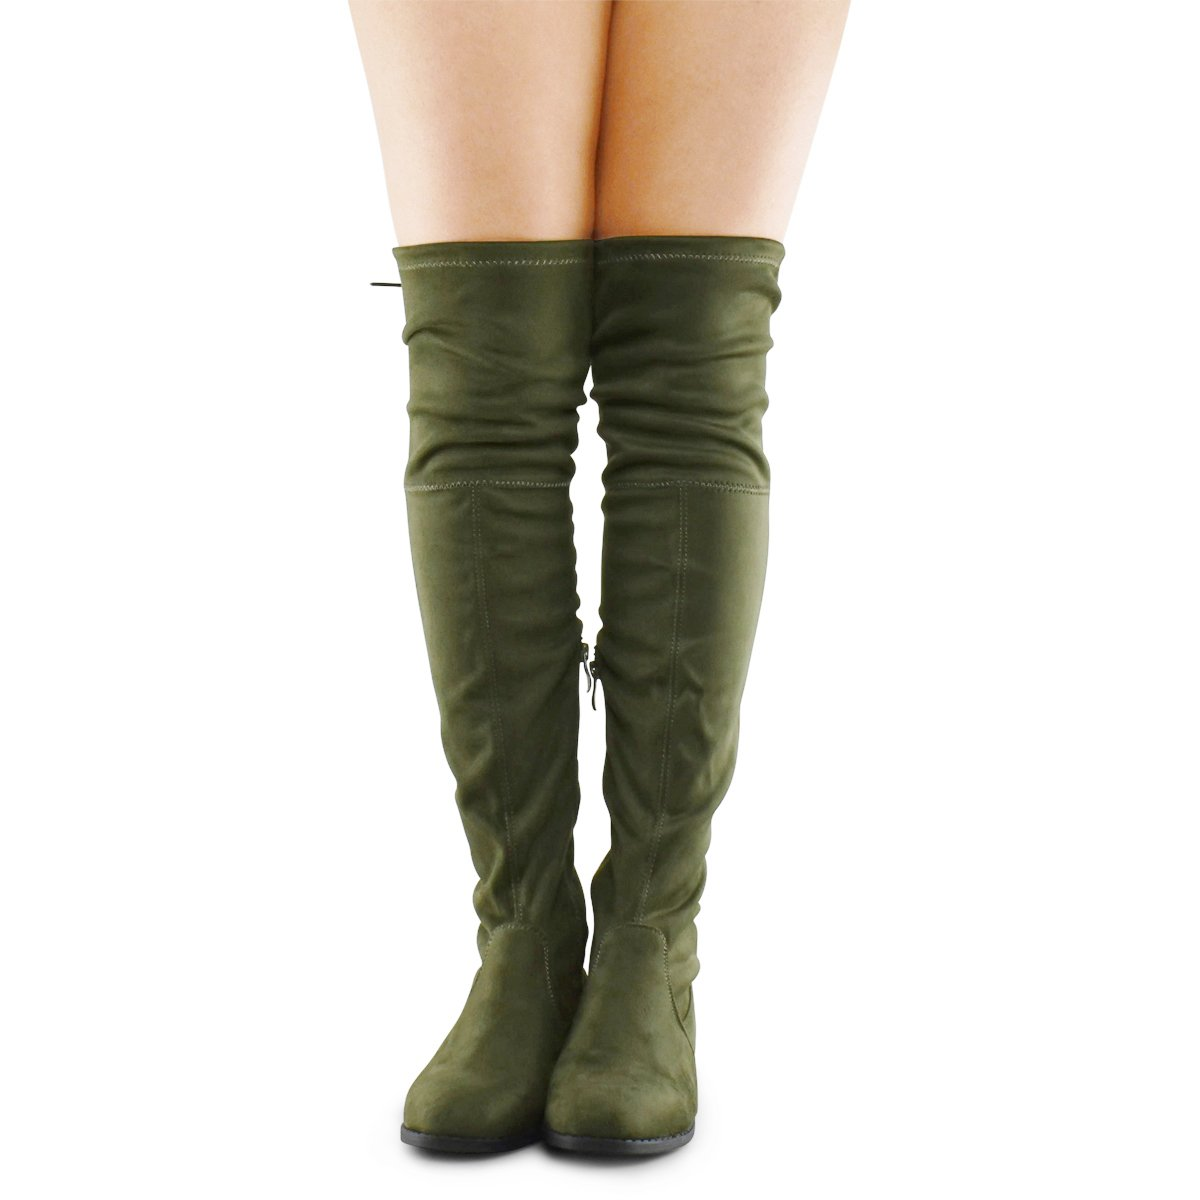 81e2d3d229c0 Premier Standard Women Fashion Comfy Vegan Suede Block Heel Slip On Thigh  High Over The Knee Boots ...